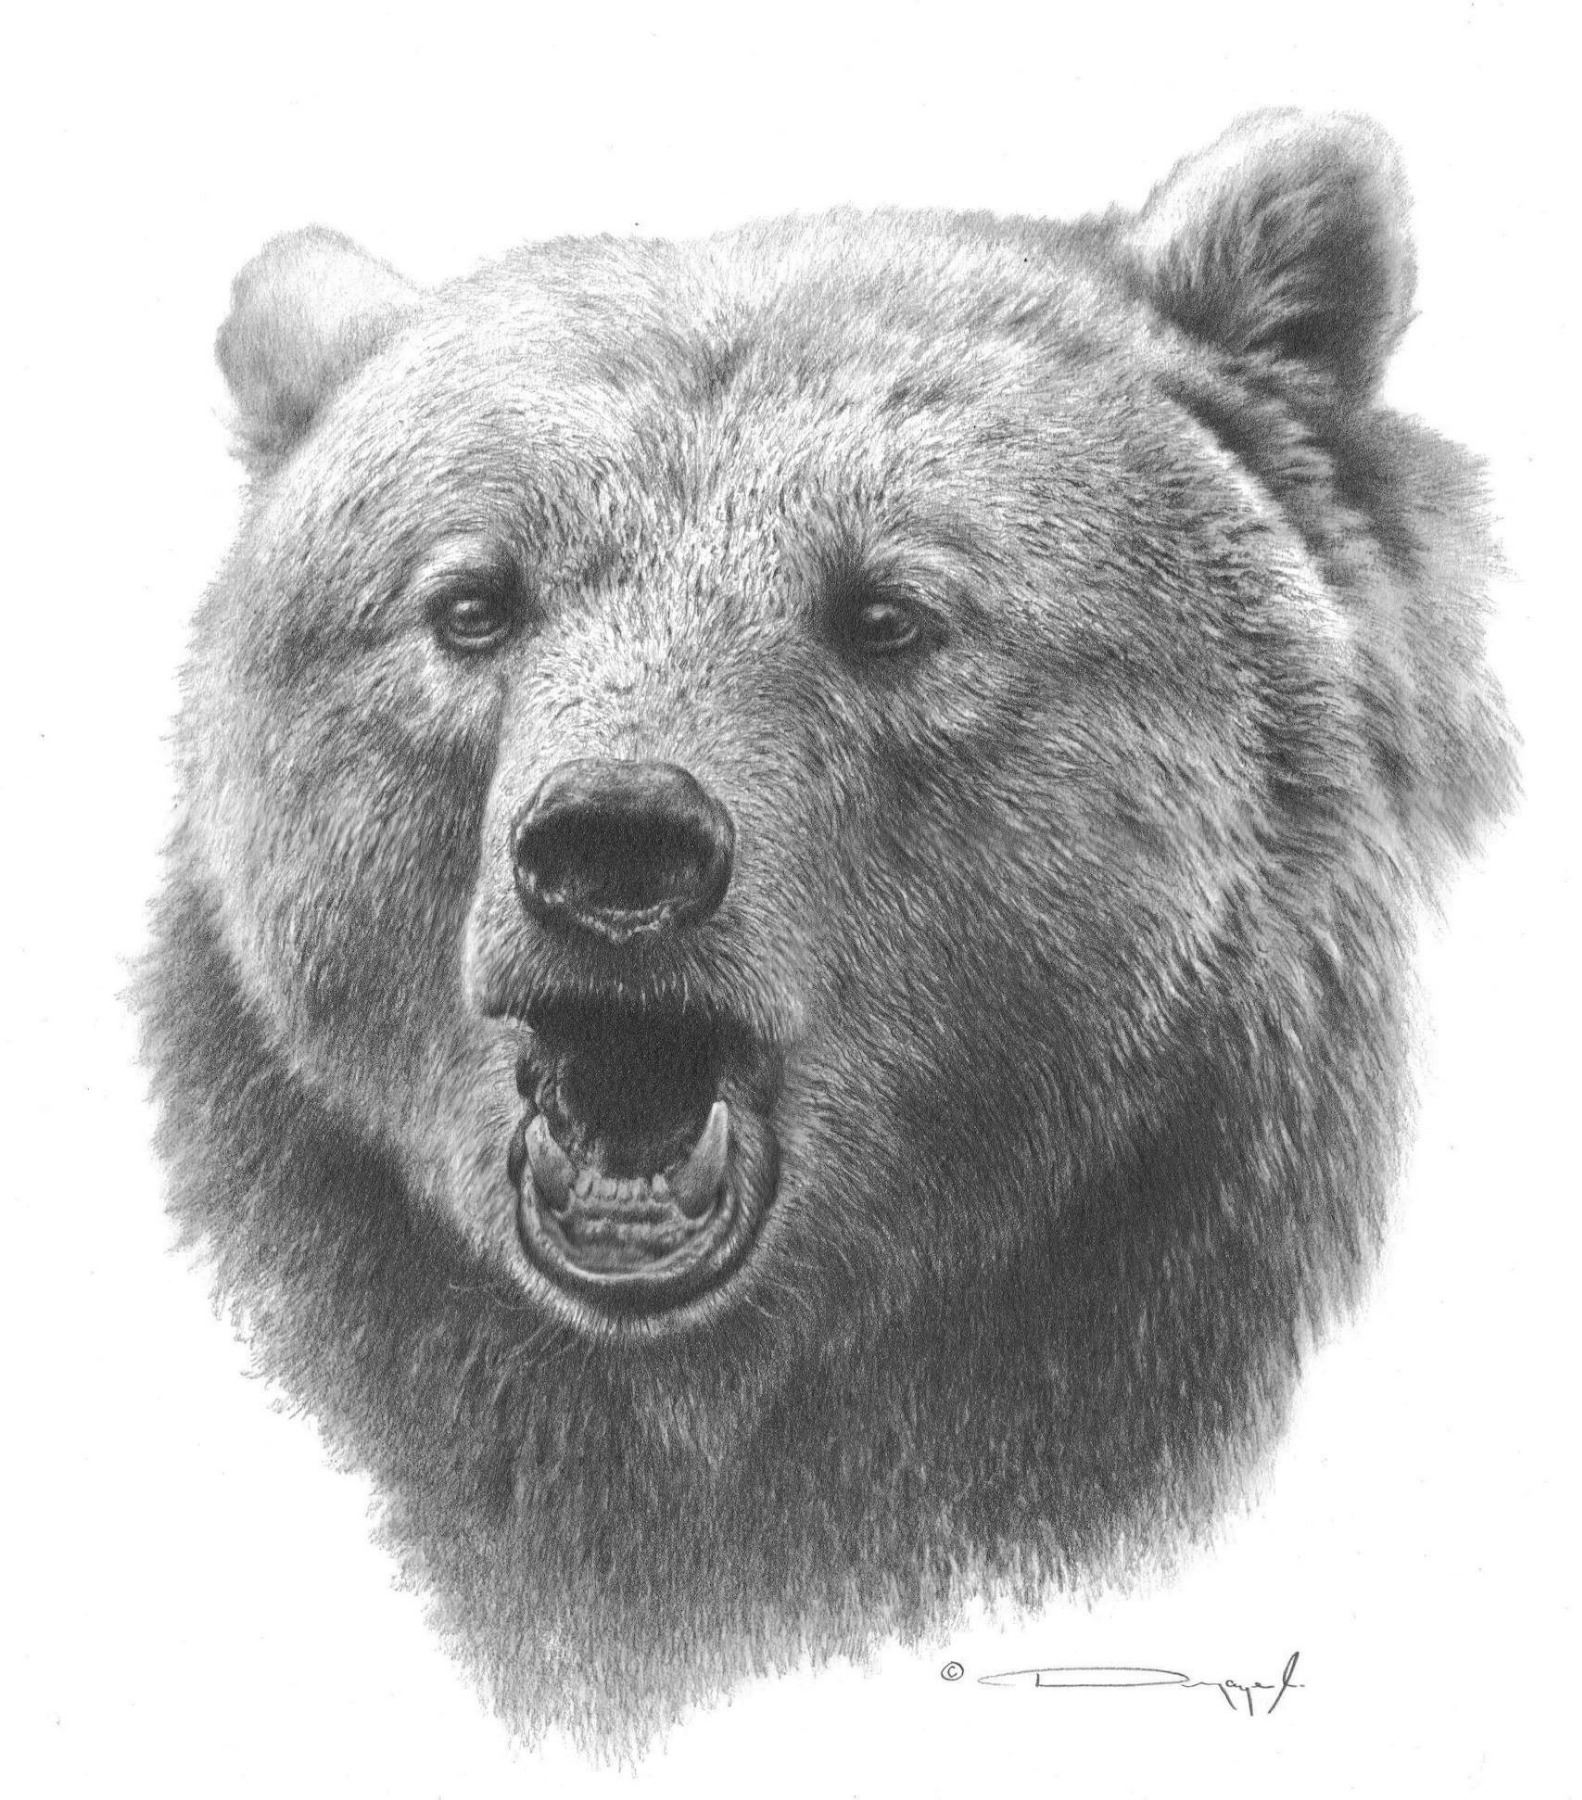 grizzly bear drawings grizzly bear fishing quality pencil drawing artist bear drawings grizzly